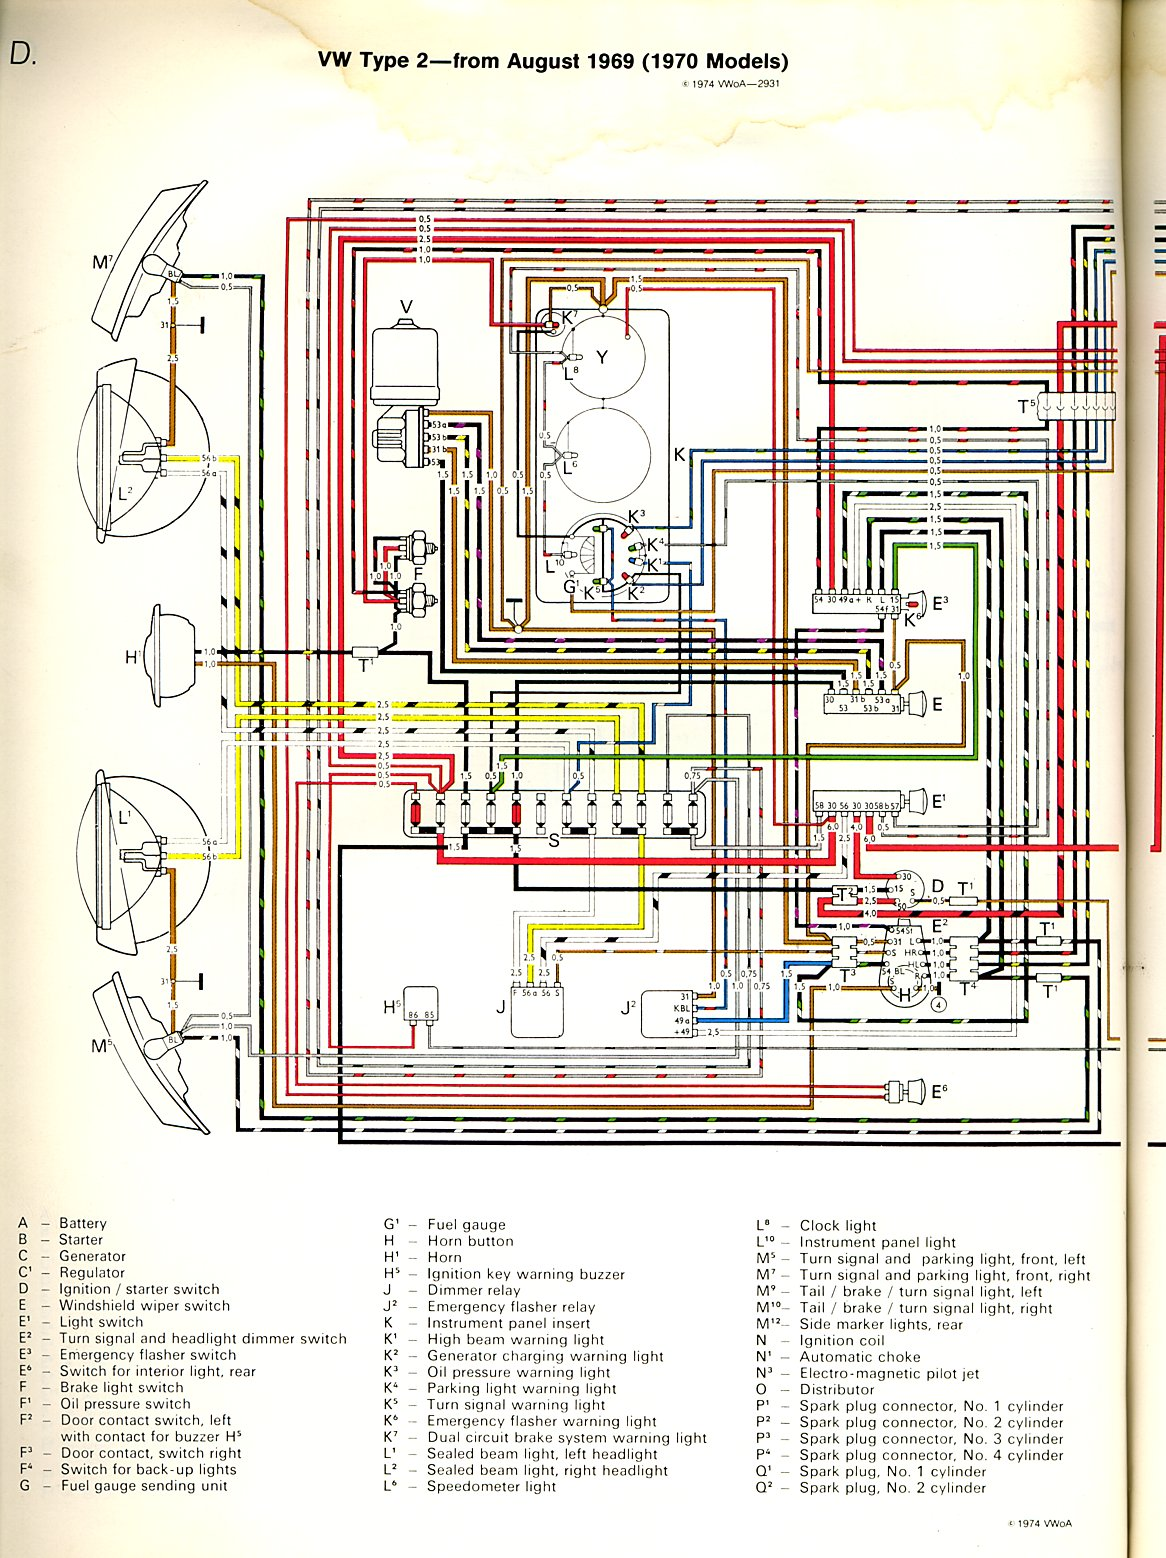 1977 Volkswagen Bus Wiring Diagram Diagrams Vw T2 Thesamba Com Type 2 Bug